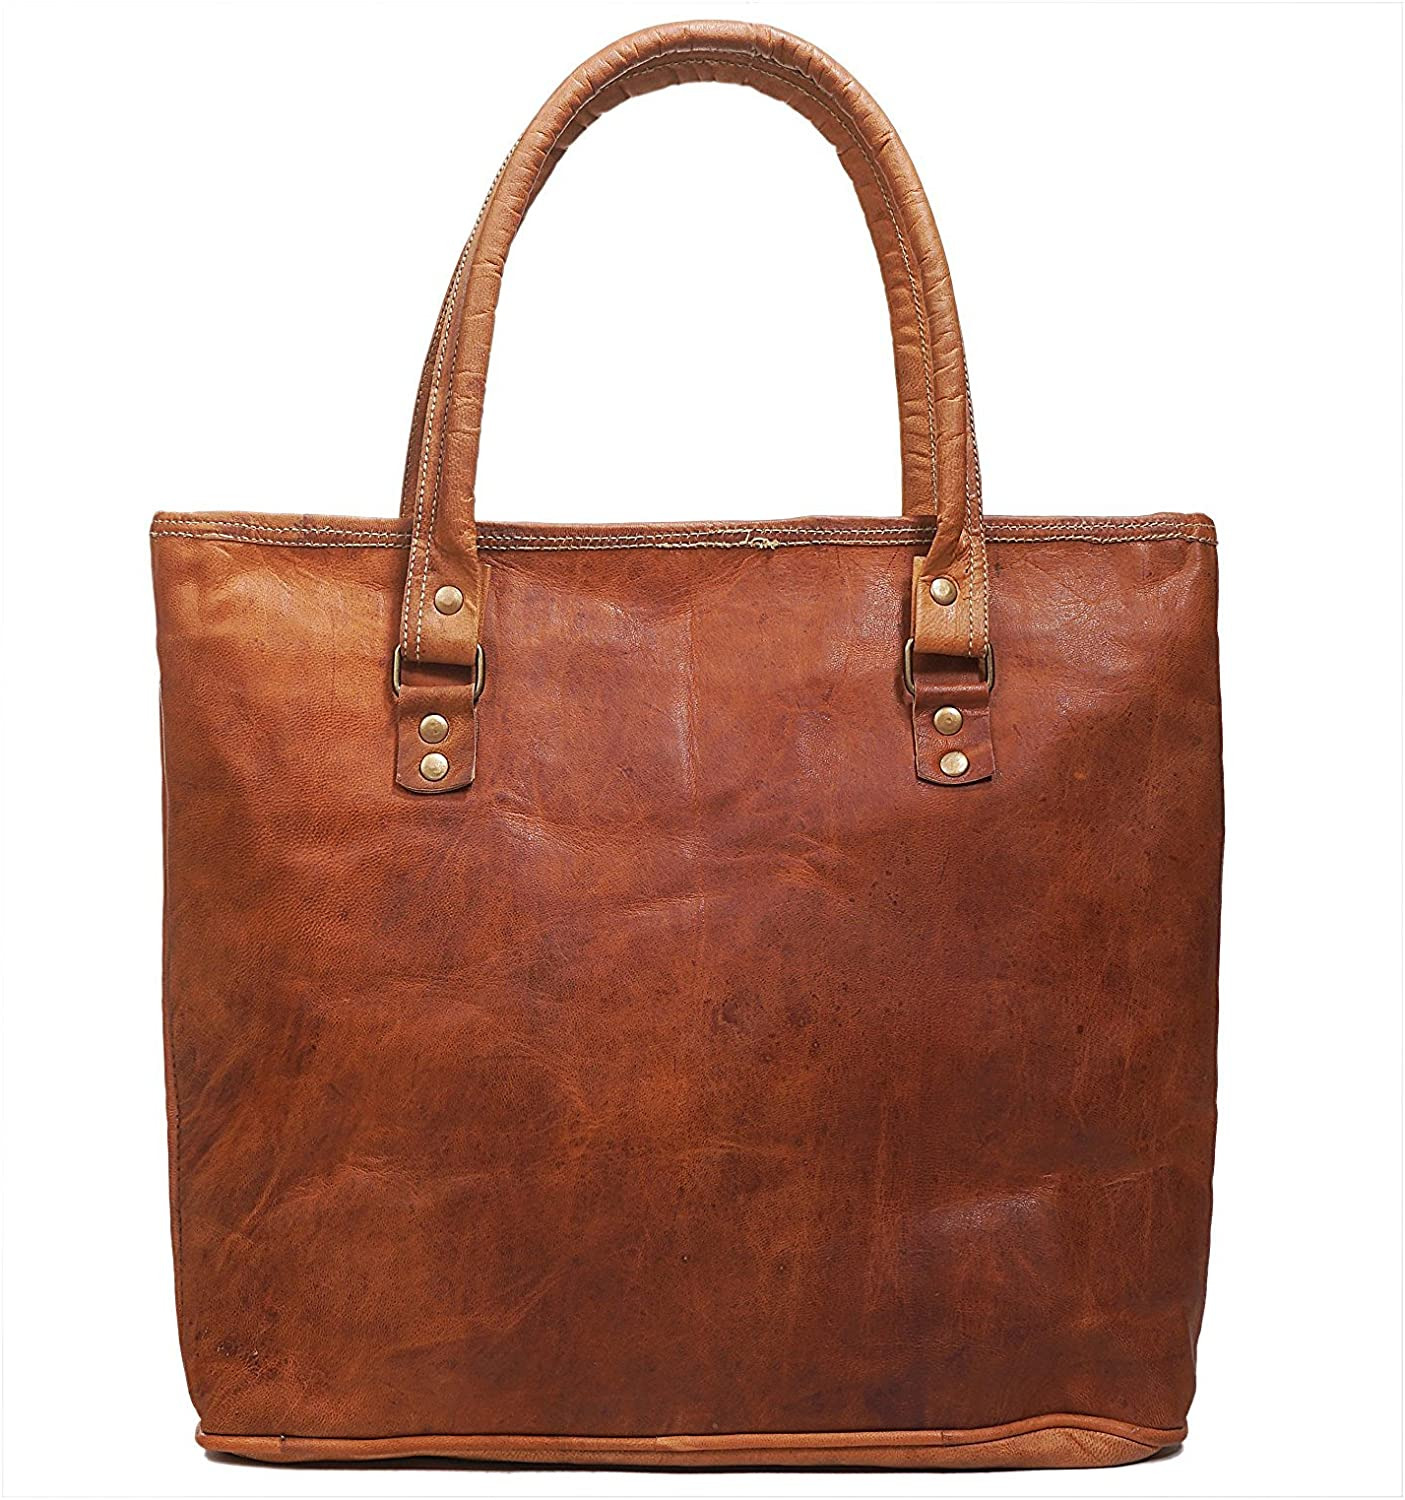 Leather Top Handle Handbags Vintage Style Tote Bag for Women Girls (Without Strap)